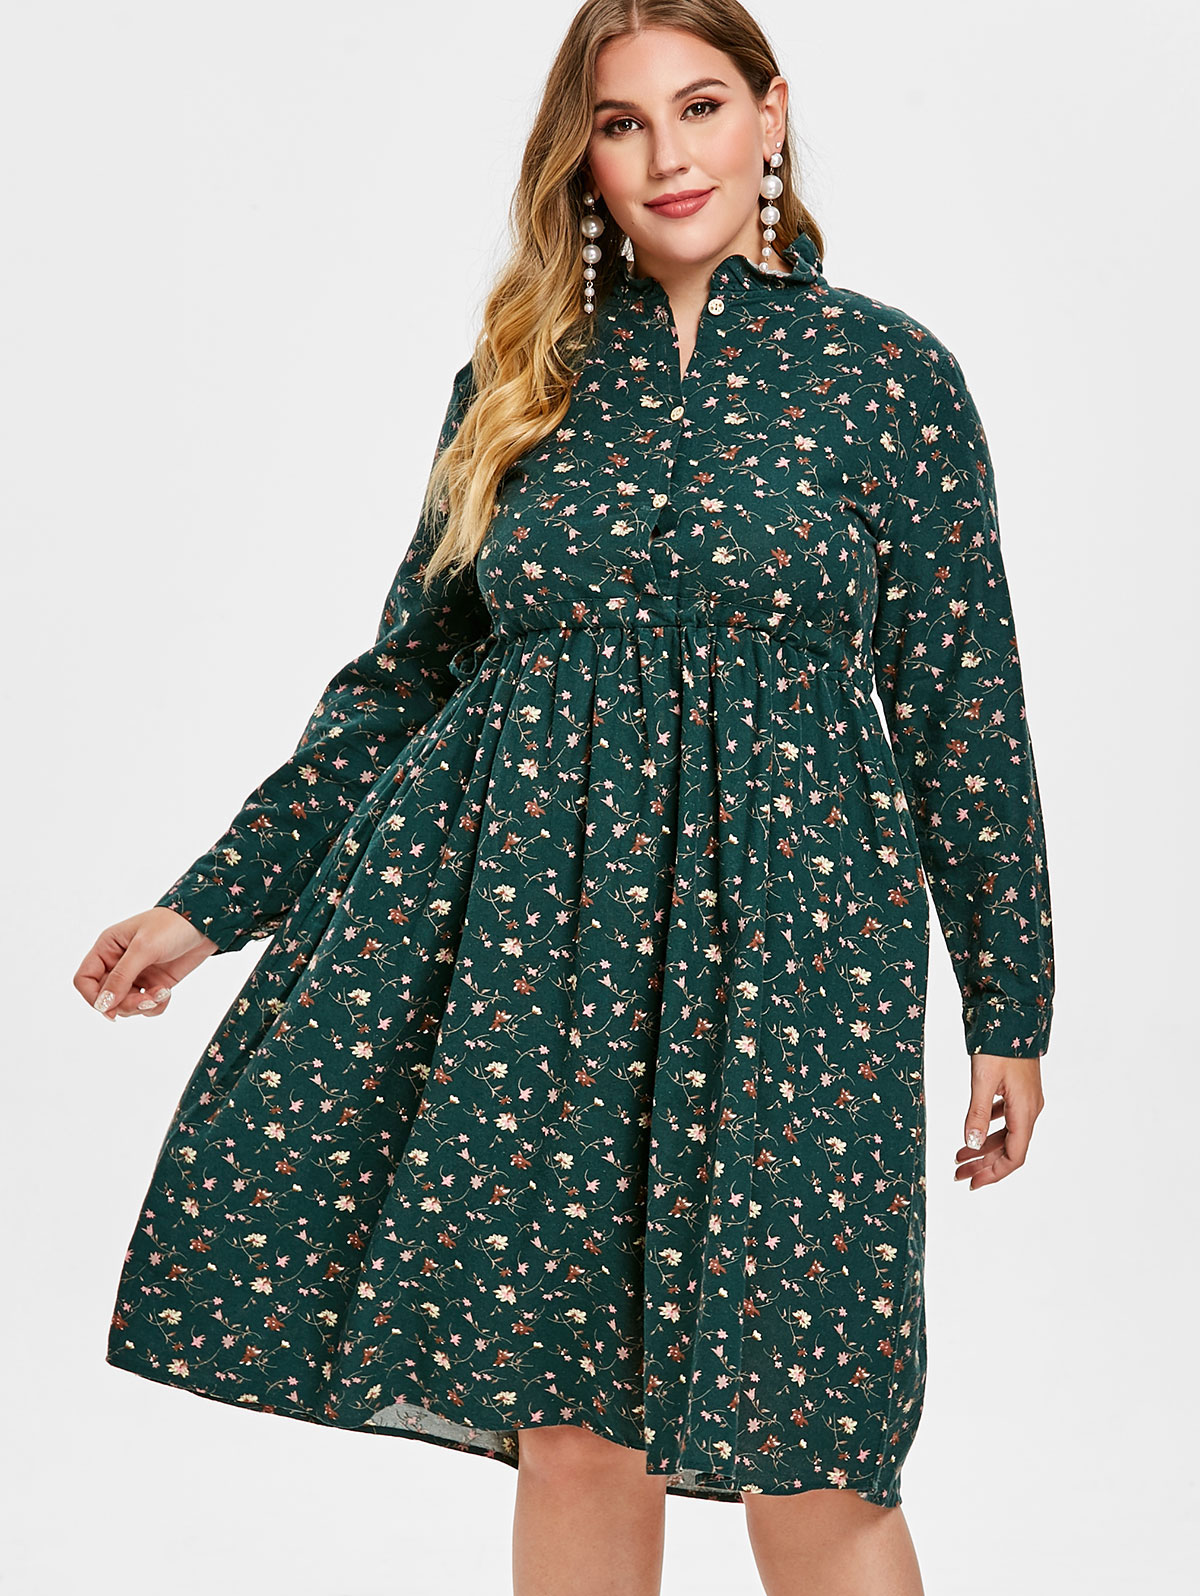 Wipalo Women Spring Plus Size Half Button Floral Print Flare Dress Shirt  Collor Long Sleeves High 9ad18685c659